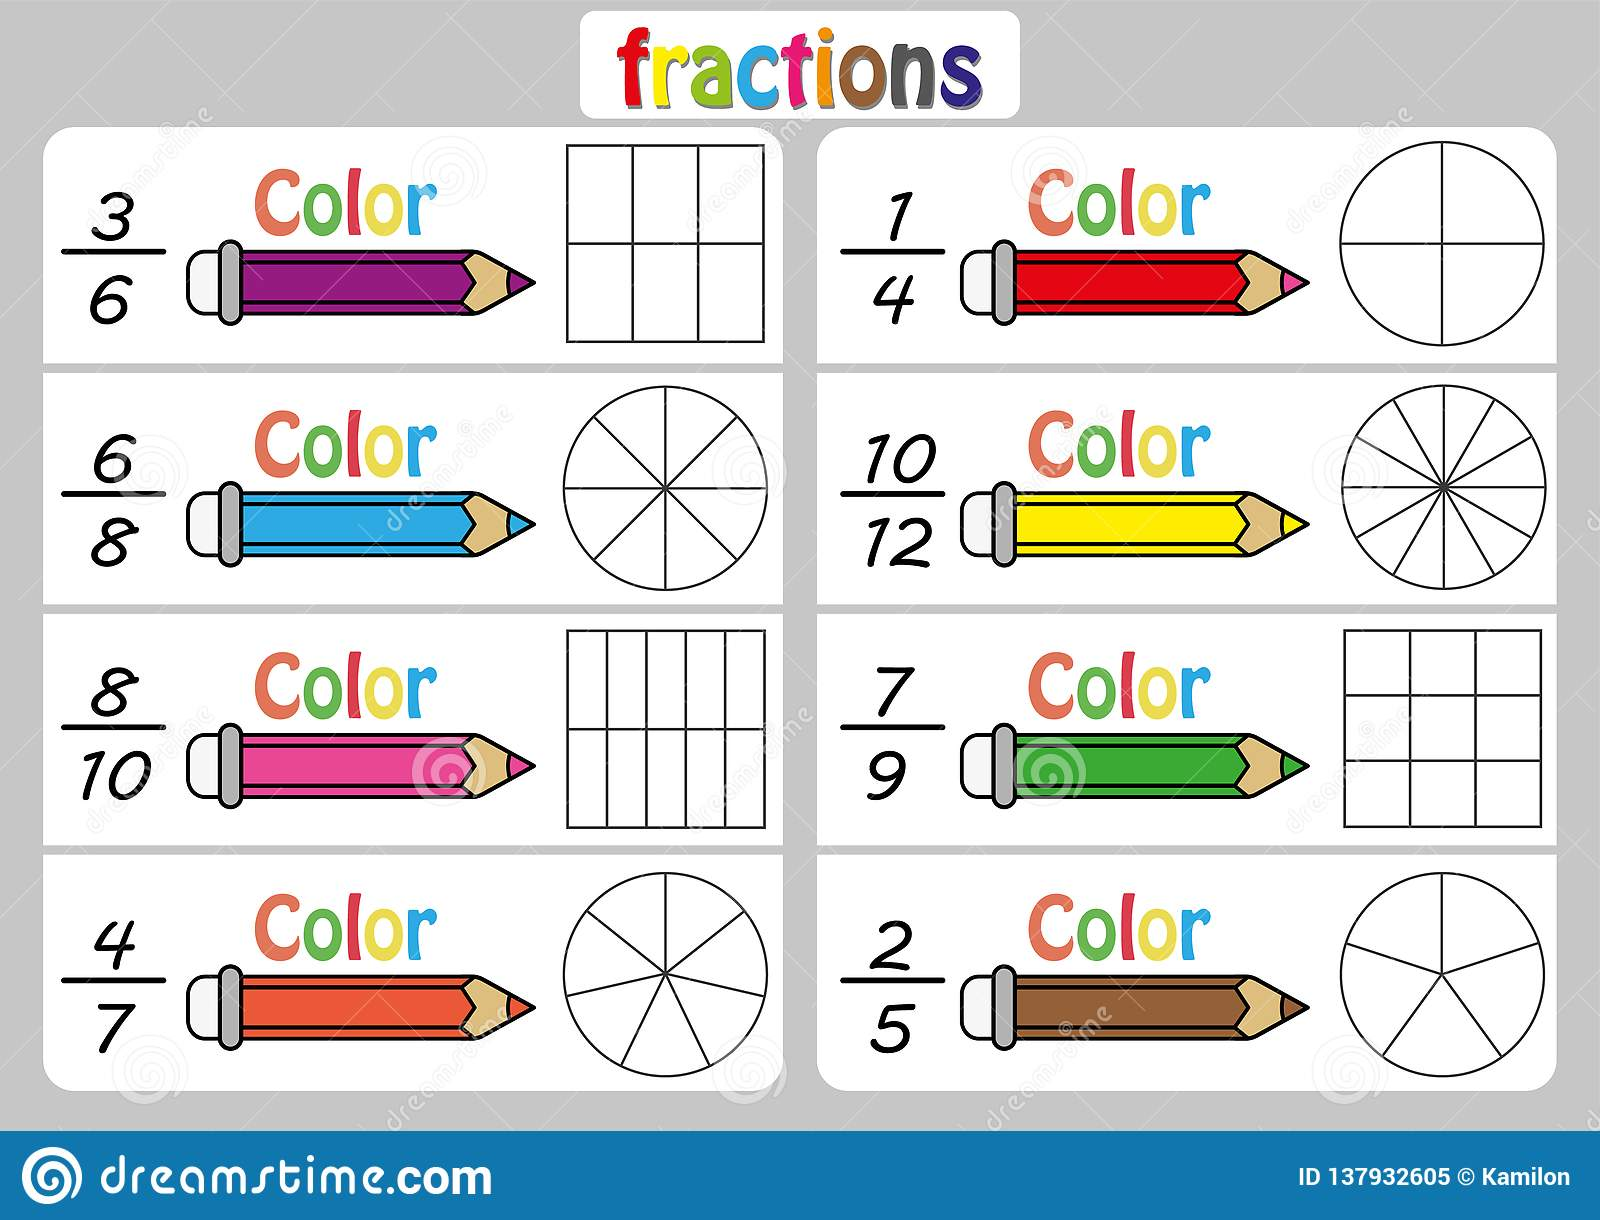 Worksheet On Fractions For Grade 5